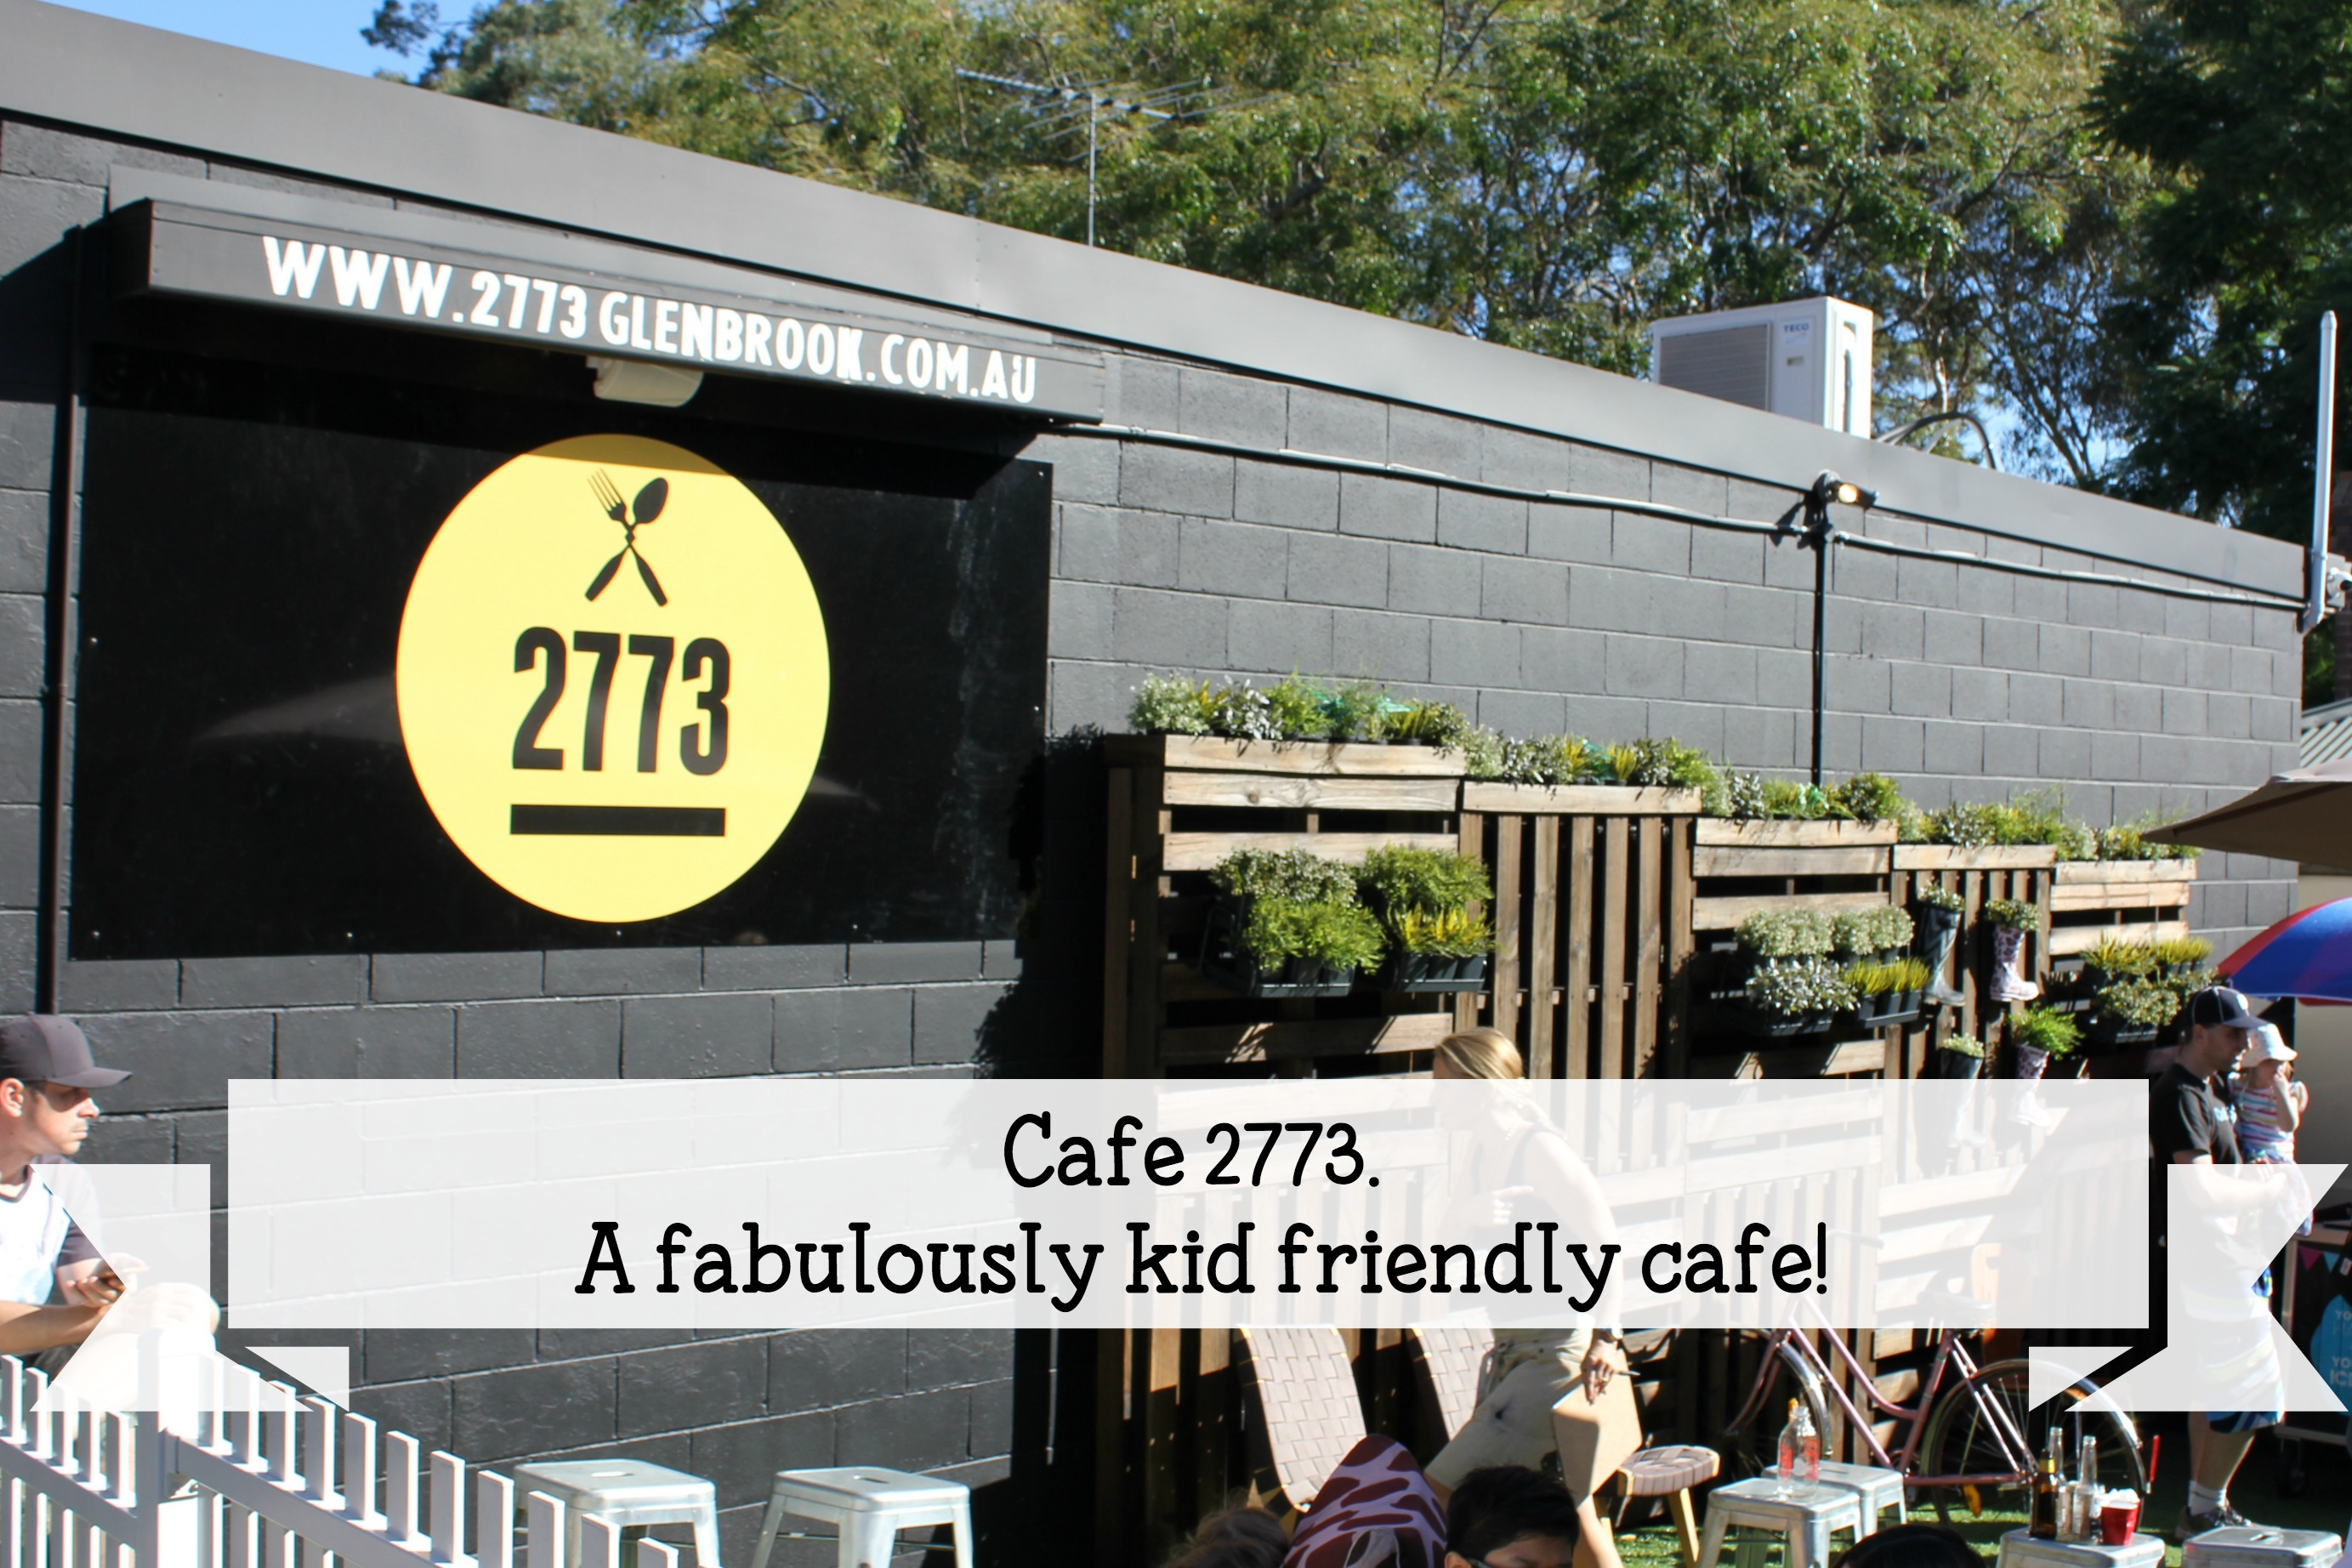 Cafe 2773 - a fabulously kid friendly cafe!